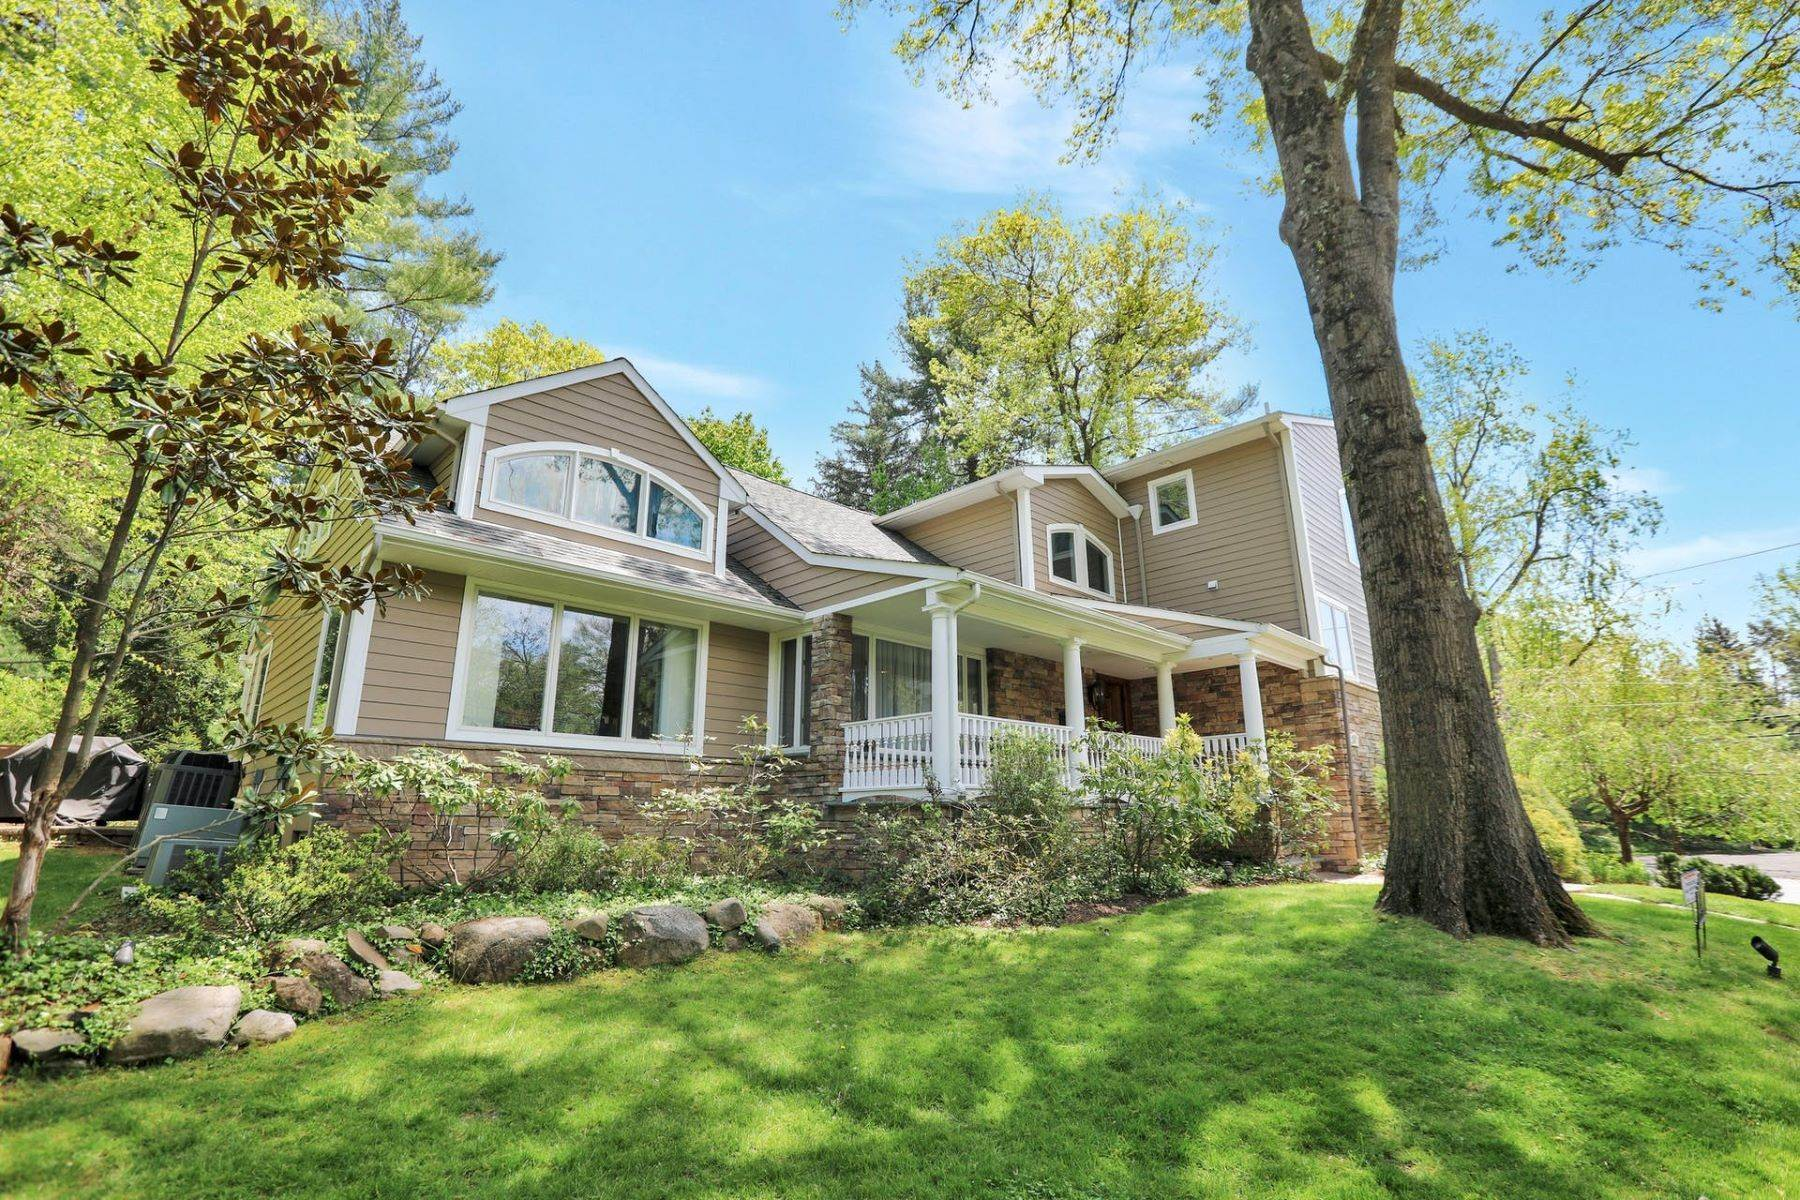 Single Family Homes for Sale at Meticulously Maintained 24 Knoll Rd Tenafly, New Jersey 07670 United States